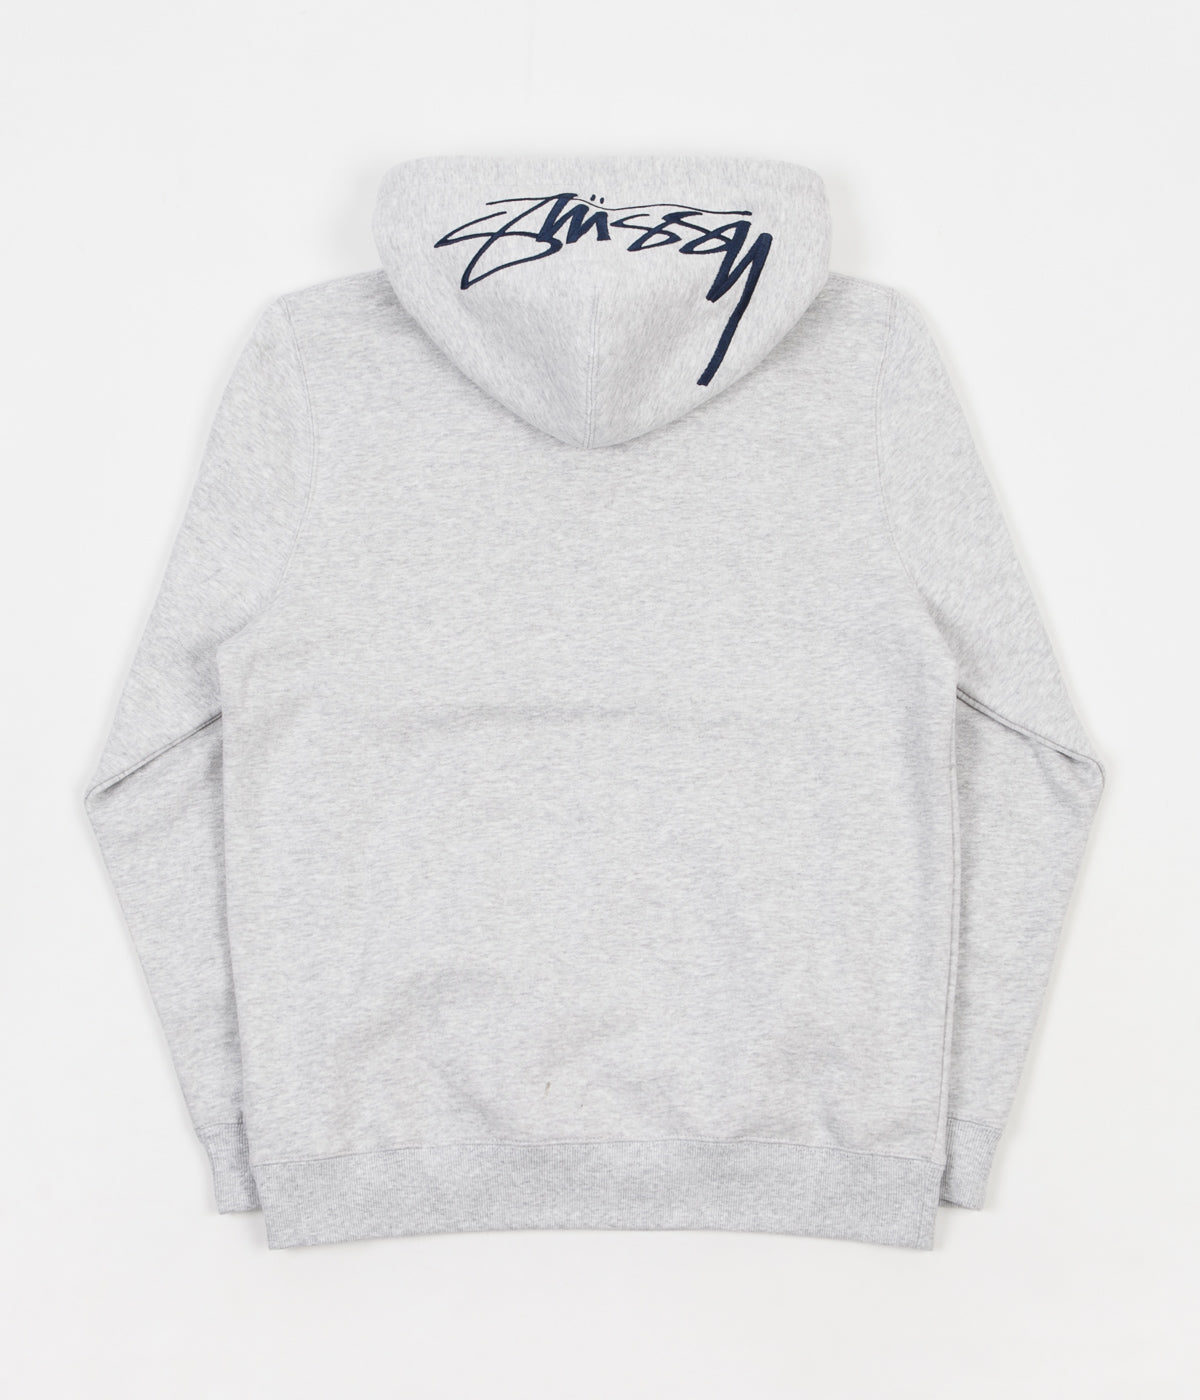 Stussy Smooth Stock Applique Hoodie - Grey Heather